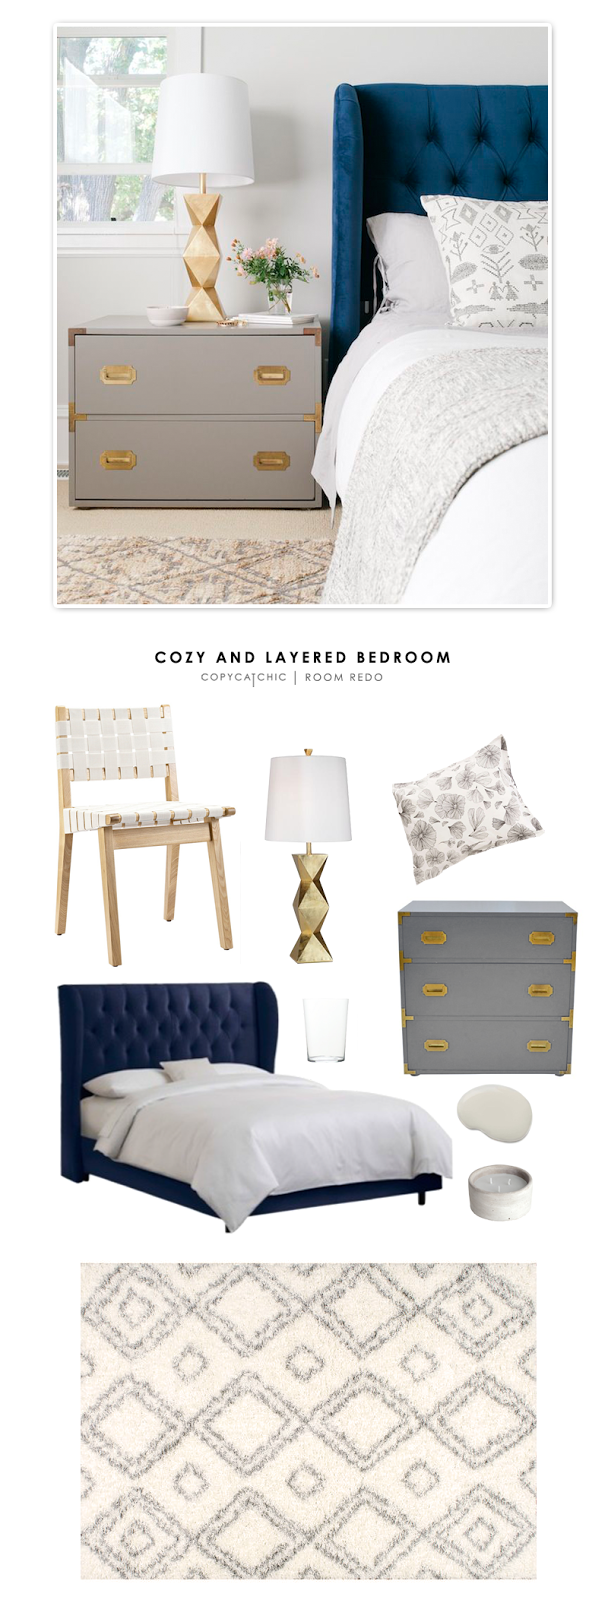 Copy Cat Chic Room Redo Cozy And Layered Bedroom